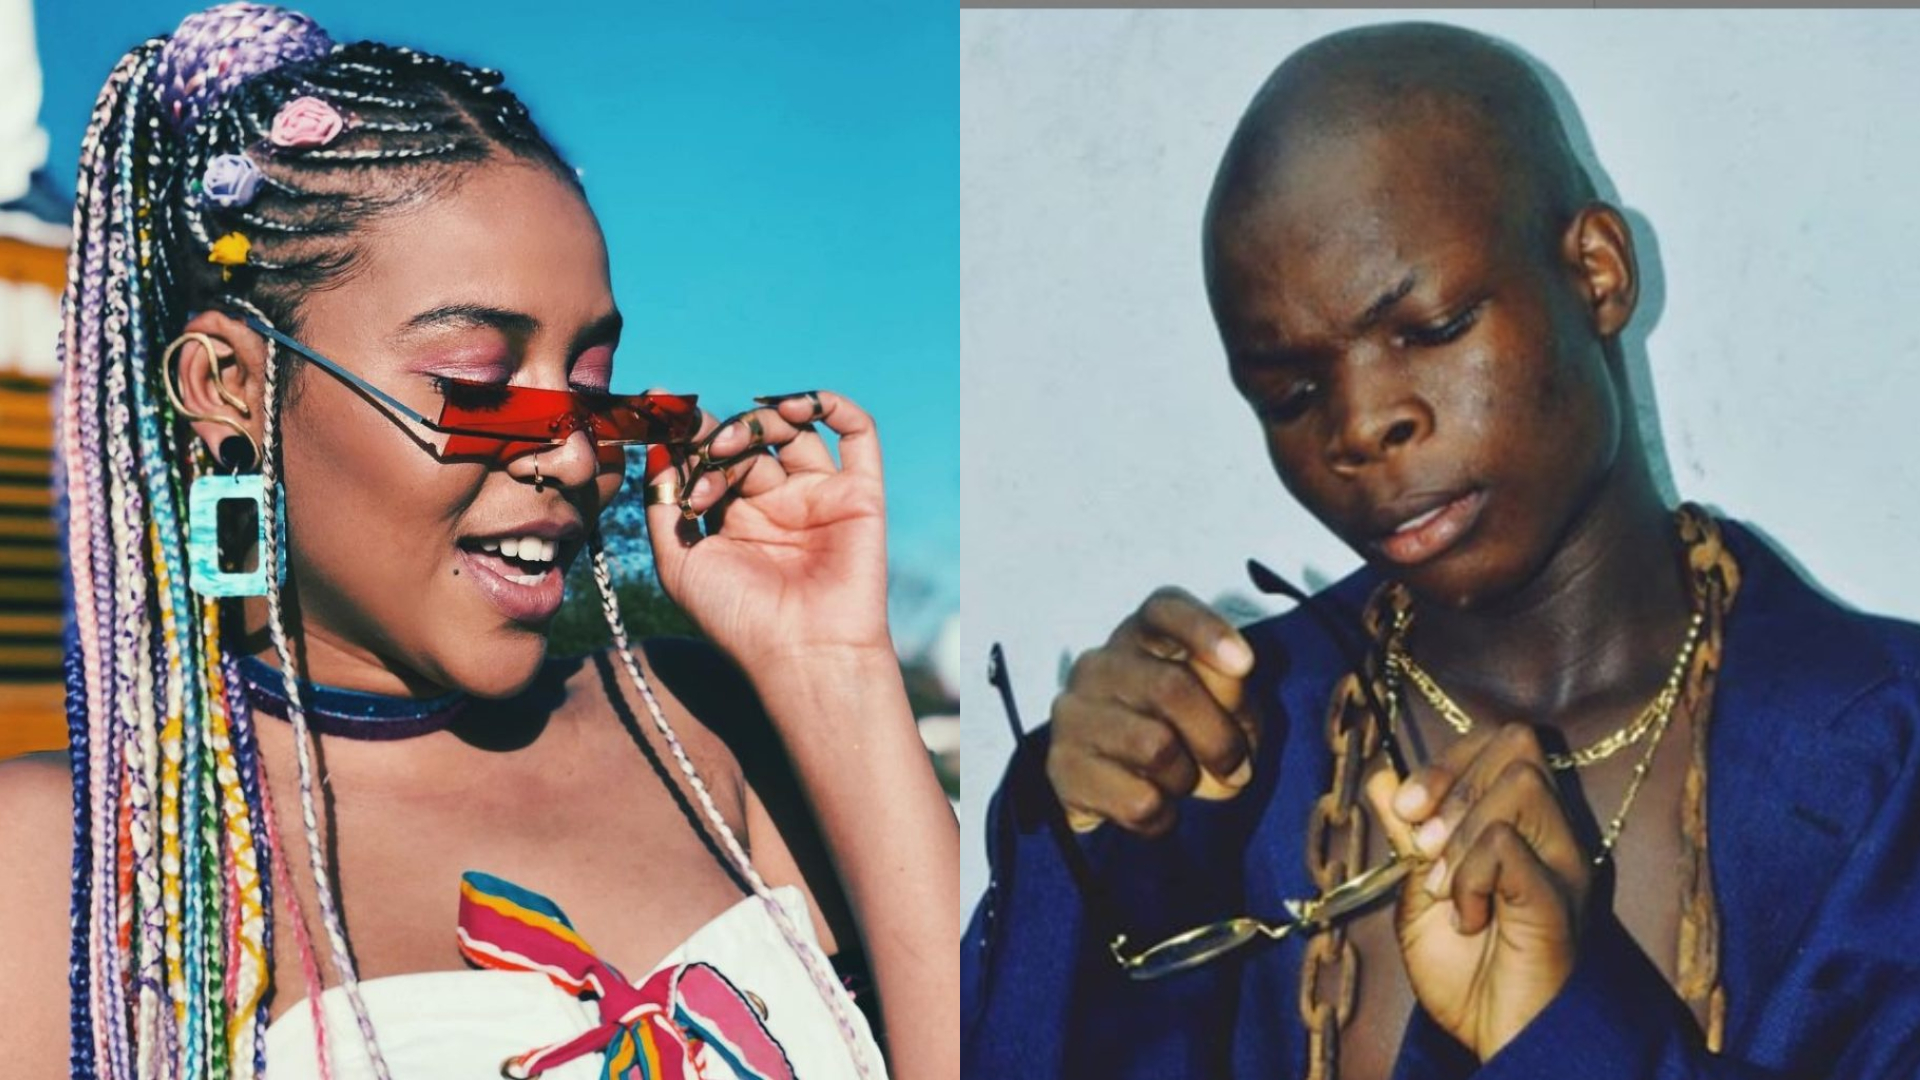 """Goat"" crooner, Ay Poyoo reaches out to Sho Madjozi for a collaboration"